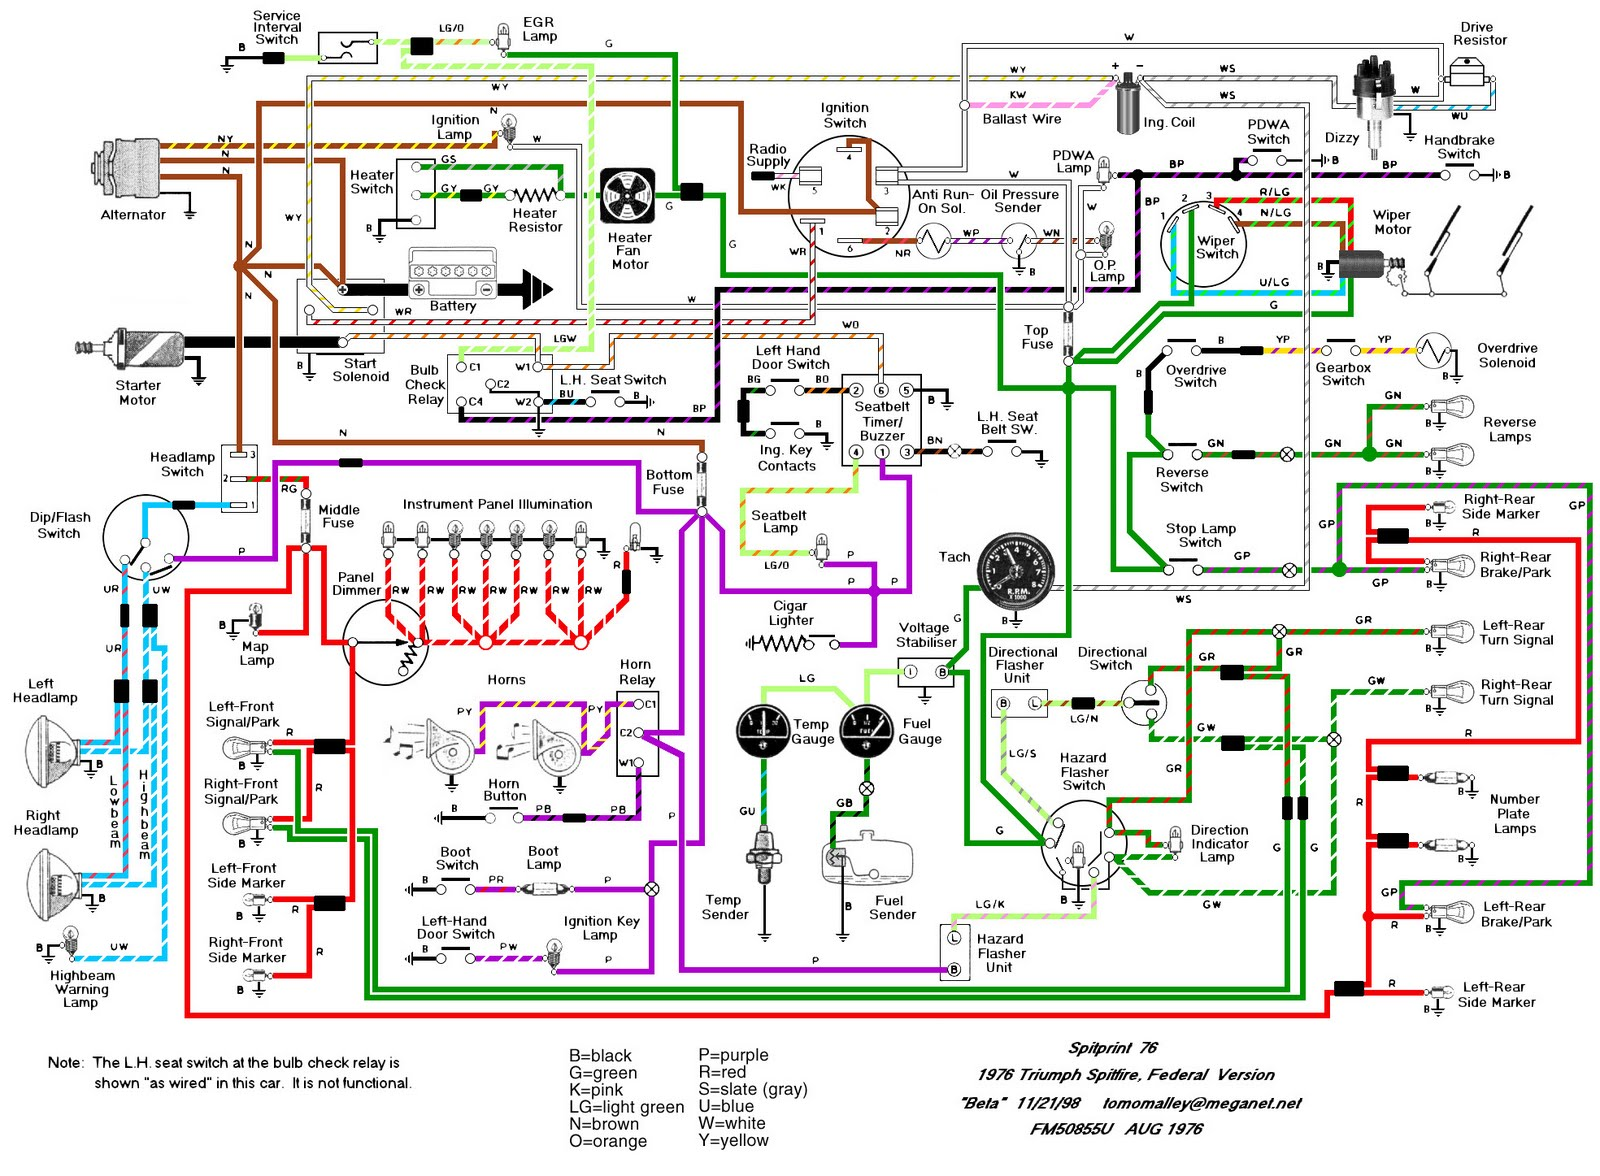 pdf wiring diagrams for 2004 f53 ford with 1980 Mini Cooper Wiring Diagram on Wiringdiagrams21   wp Content uploads 2010 06 Jeep Grand Cherokee Radio Adaptor Wiring also EFI 20Swap 20  20Wiring as well Faq Installation Of Brake Controller From Scratch additionally Wiring Diagram 2002 Town And Country Headliner likewise P 0996b43f802c54bb.